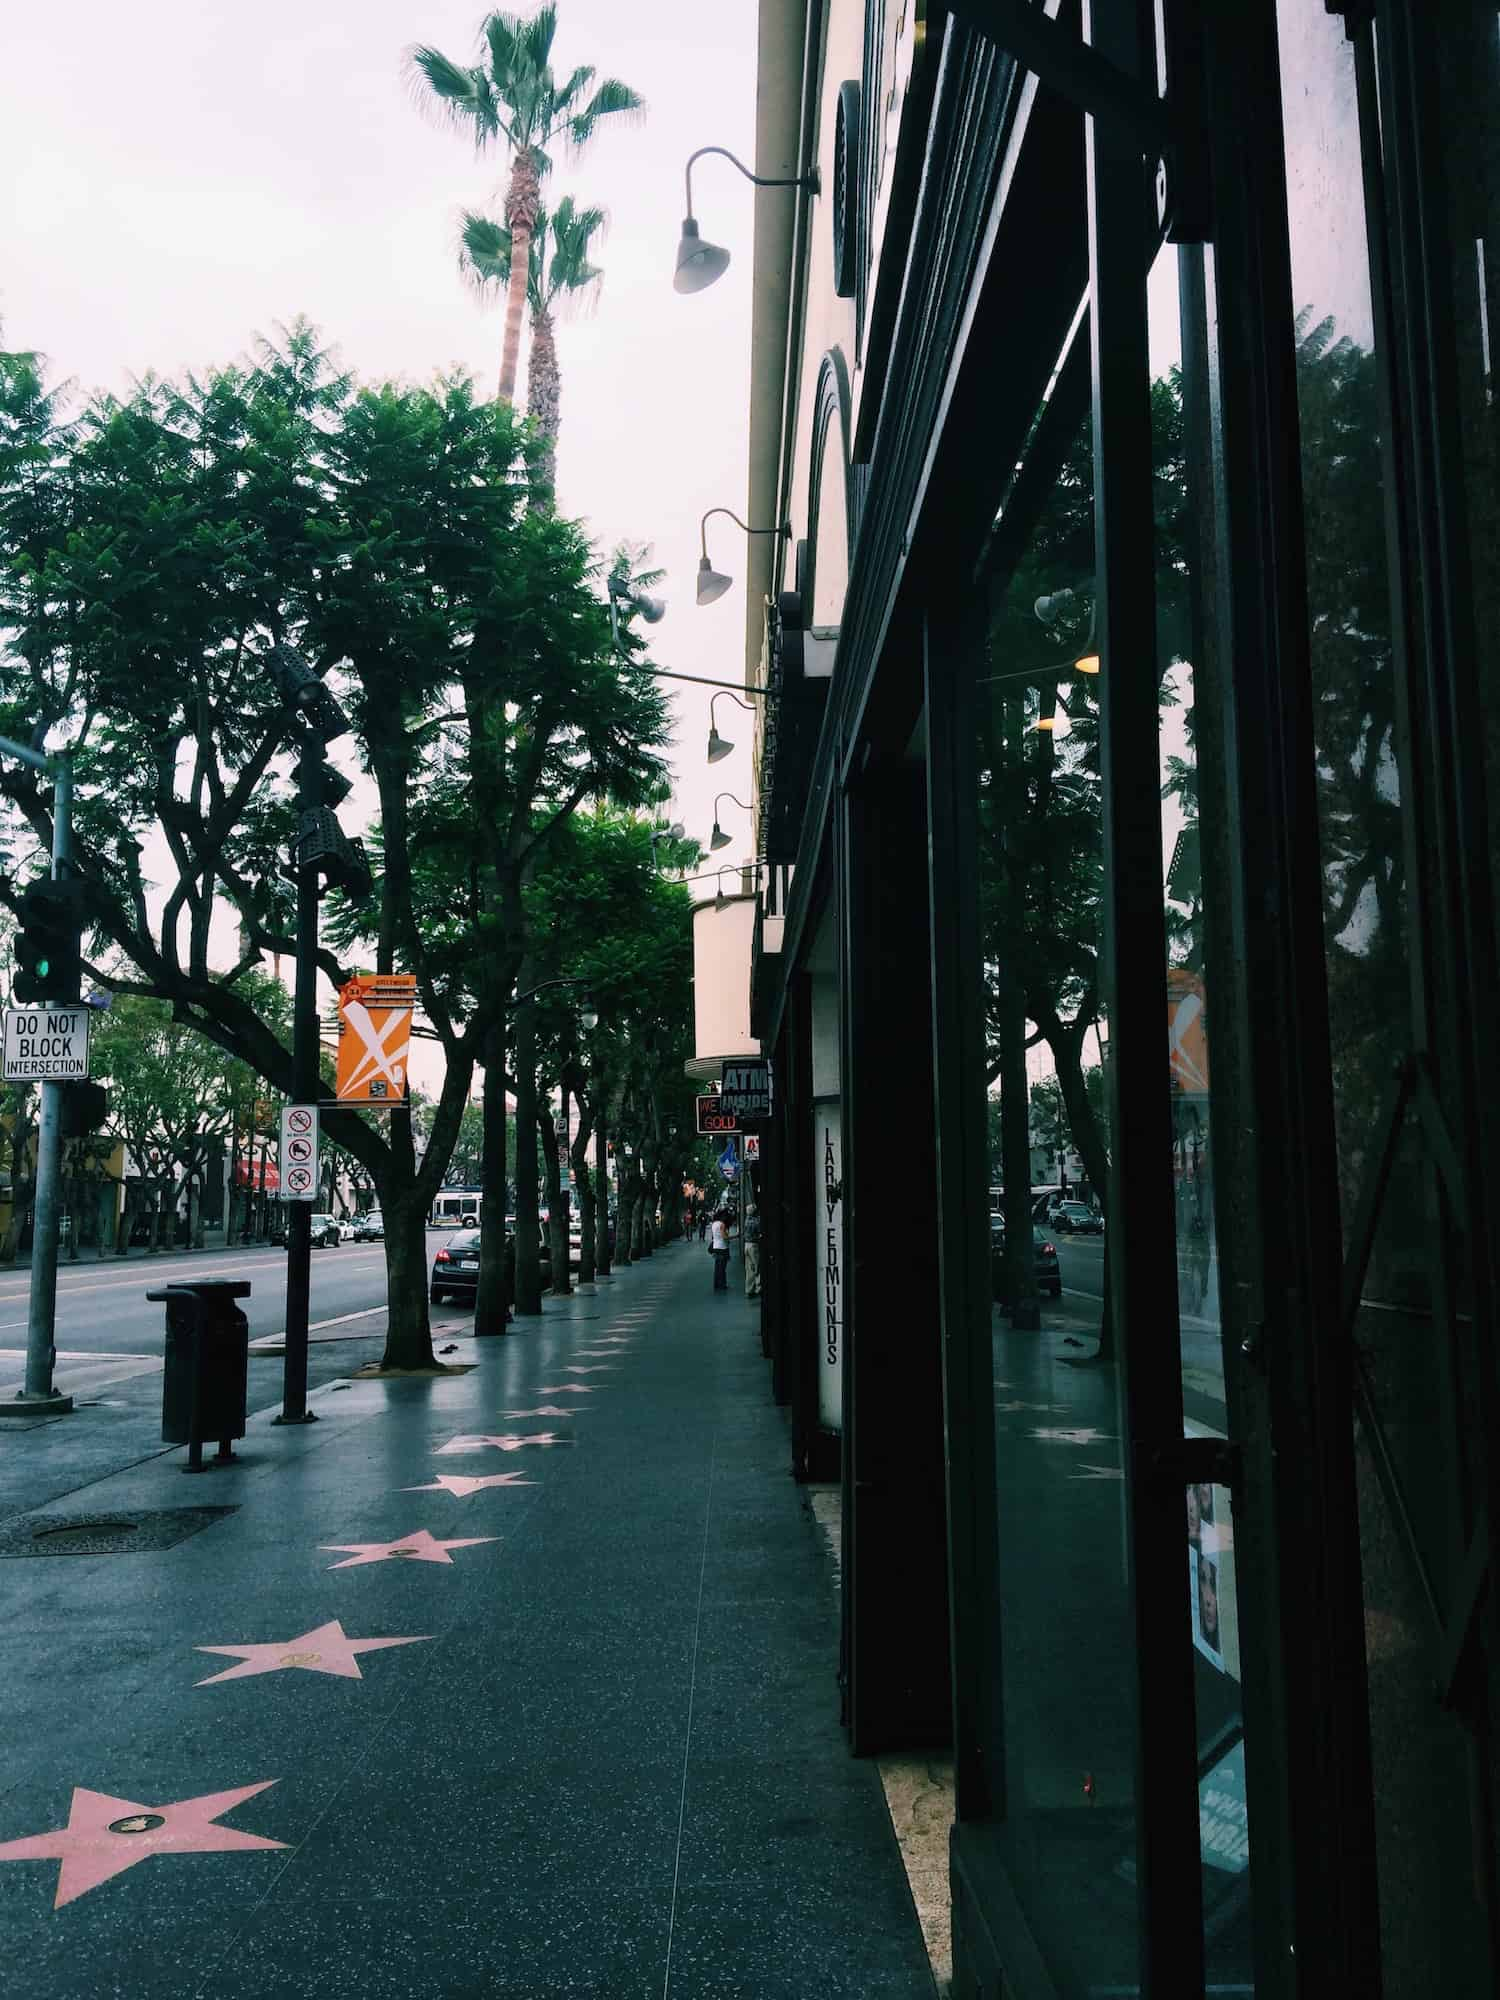 One Day in L.A. - Hollywood Walk of Fame